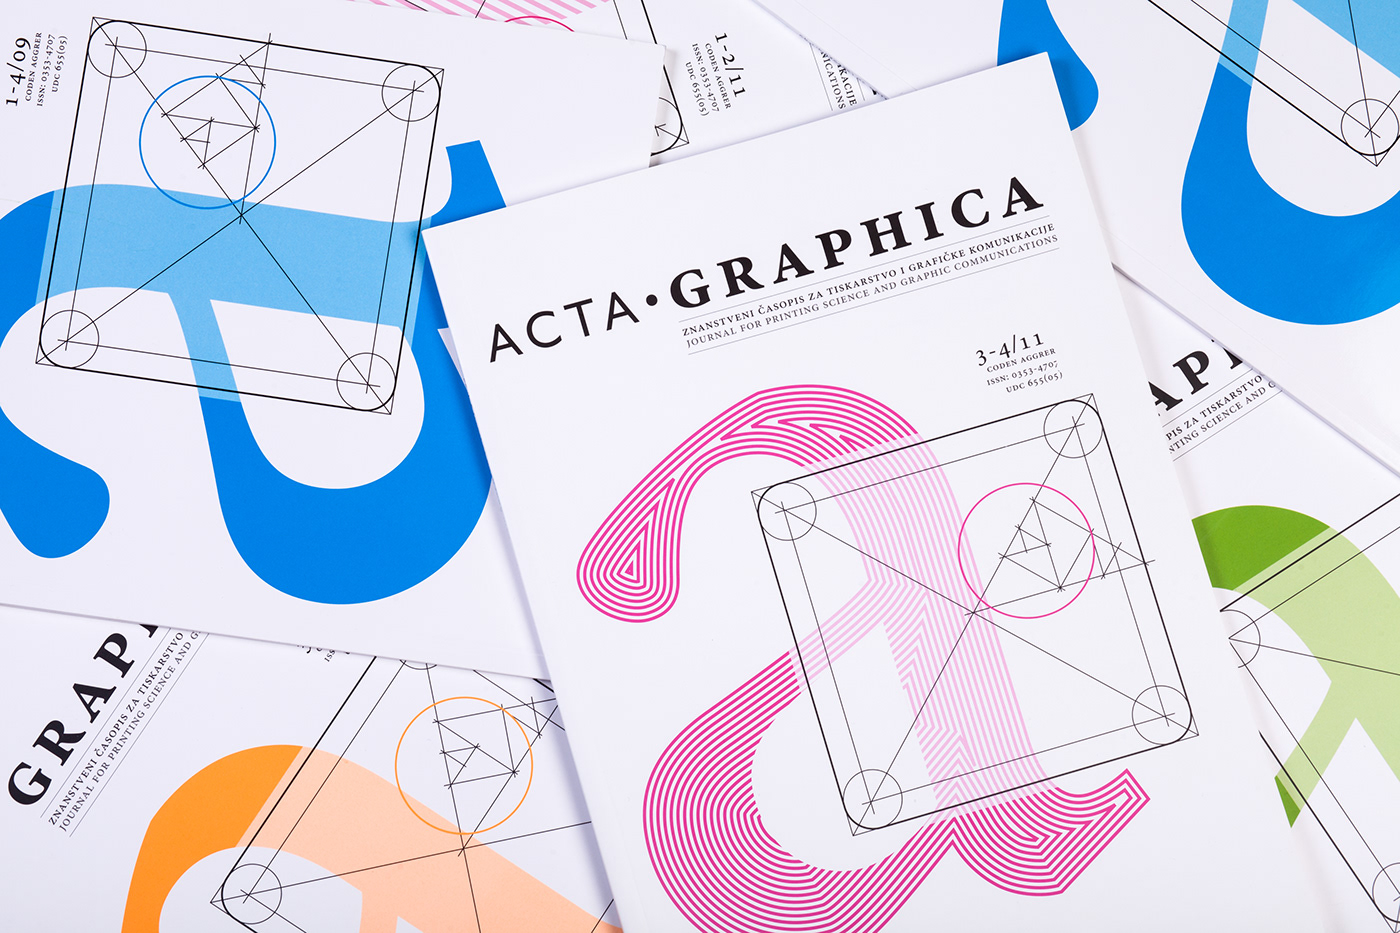 Acta Graphica Magazine redesign project